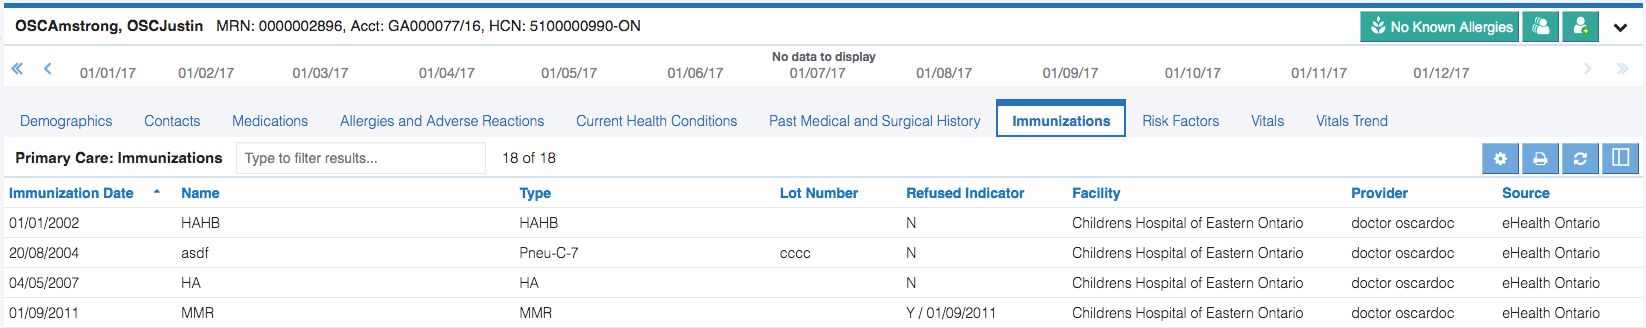 Image of the Immunizations tab in the primary care module